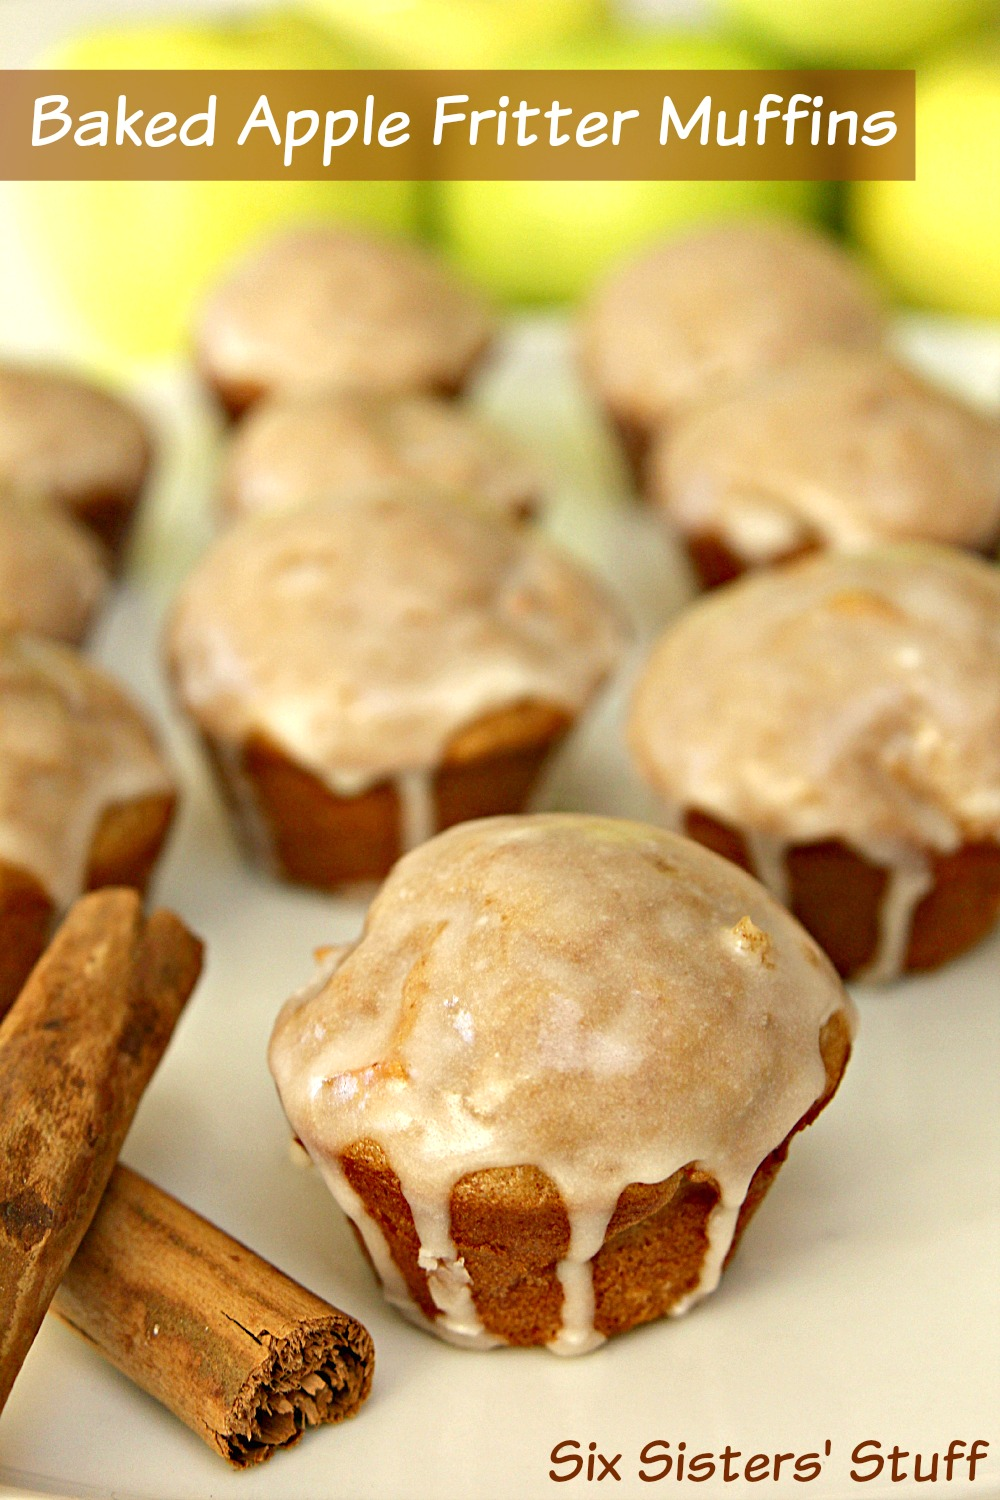 Baked Apple Fritter Muffins Recipe